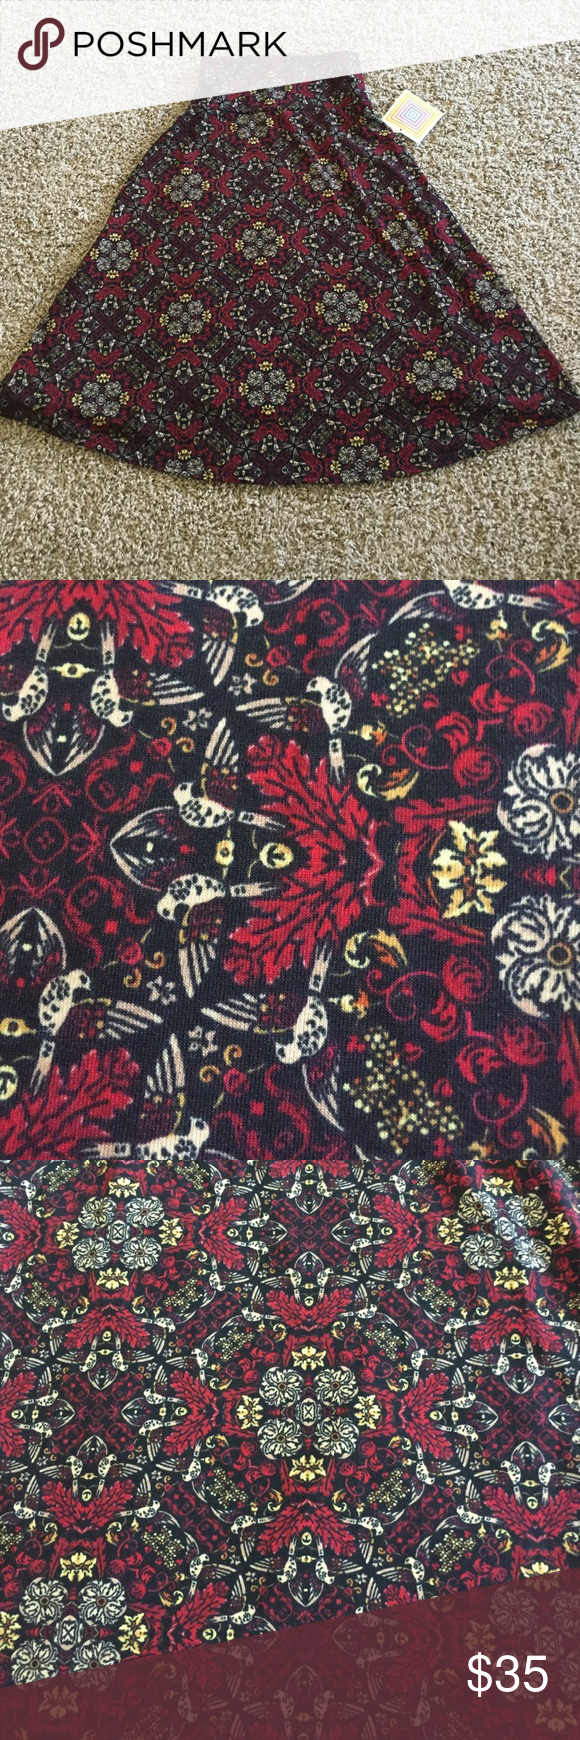 NWT Lularoe Bird Azure, Small NWT Lularoe Azure skirt in small. Cottony material. Black with burgundy, yellow, and taupe design. Fun geometric pattern with hidden birds and florals! Funky, yet subtle! LuLaRoe Skirts A-Line or Full